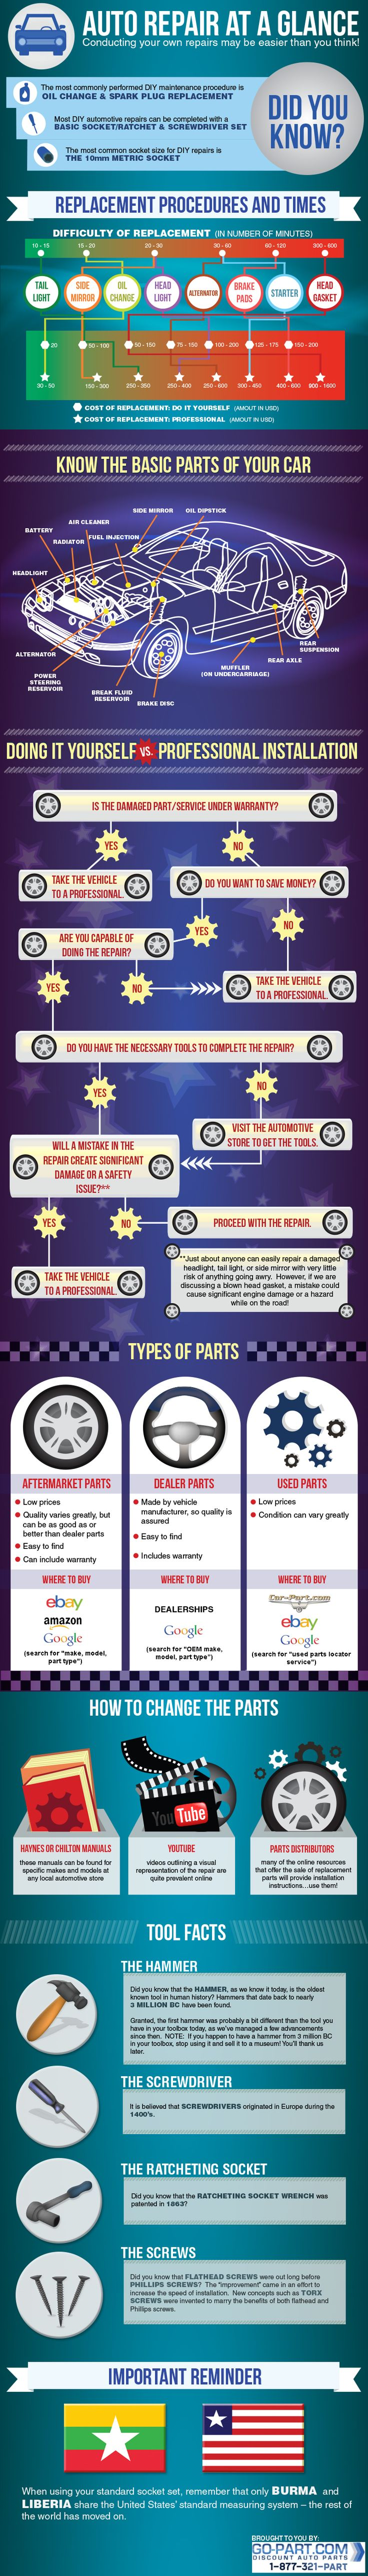 Sheldon s diy miata alignment page - Car Repairs At A Glance Infographic Know The Basics Of Repairing Your Car Download Image Sheldon S Diy Miata Alignment Page